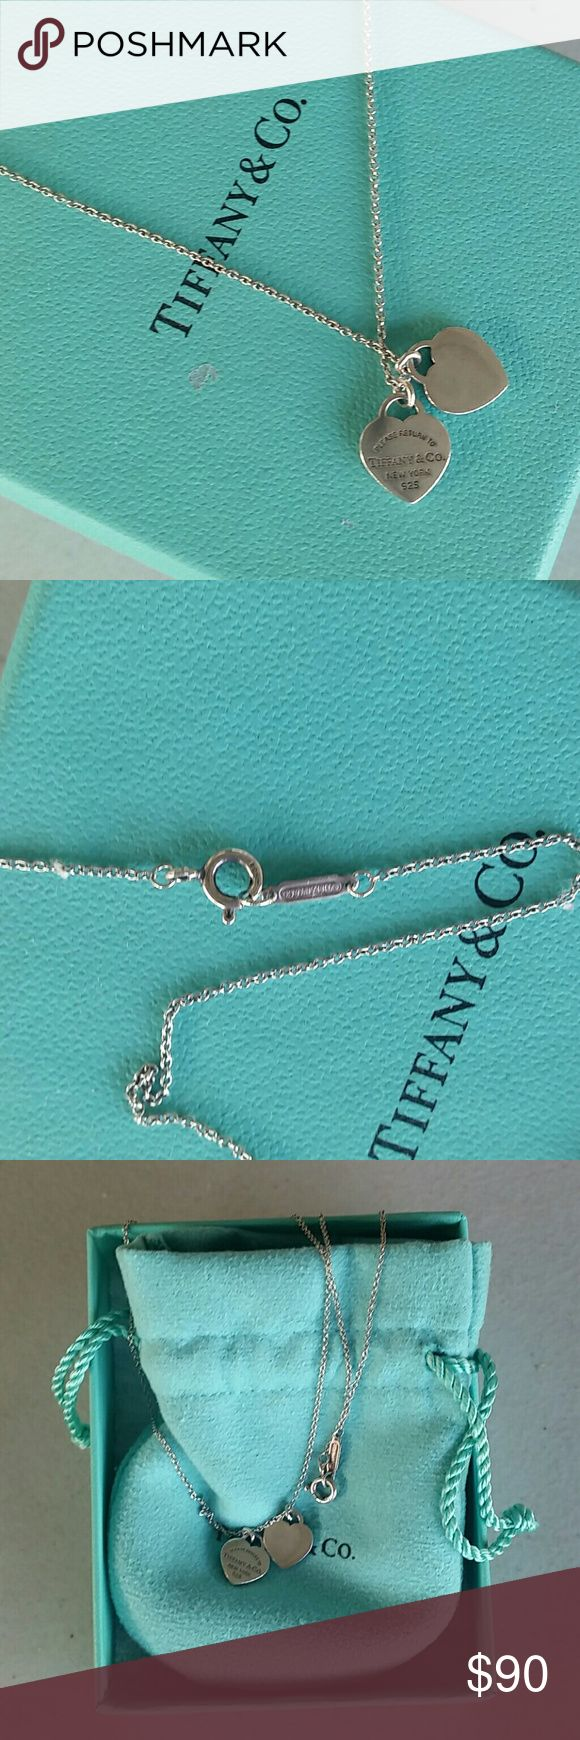 Tiffany & Co Double Heart Necklace Sterling silver! Beautiful necklace but this is from an ex so it's time to go. ?????? Comes in original box and pouch, purchased from the Ala Moana  (Hawaii) Tiffany Store. Tiffany & Co. Jewelry Necklaces